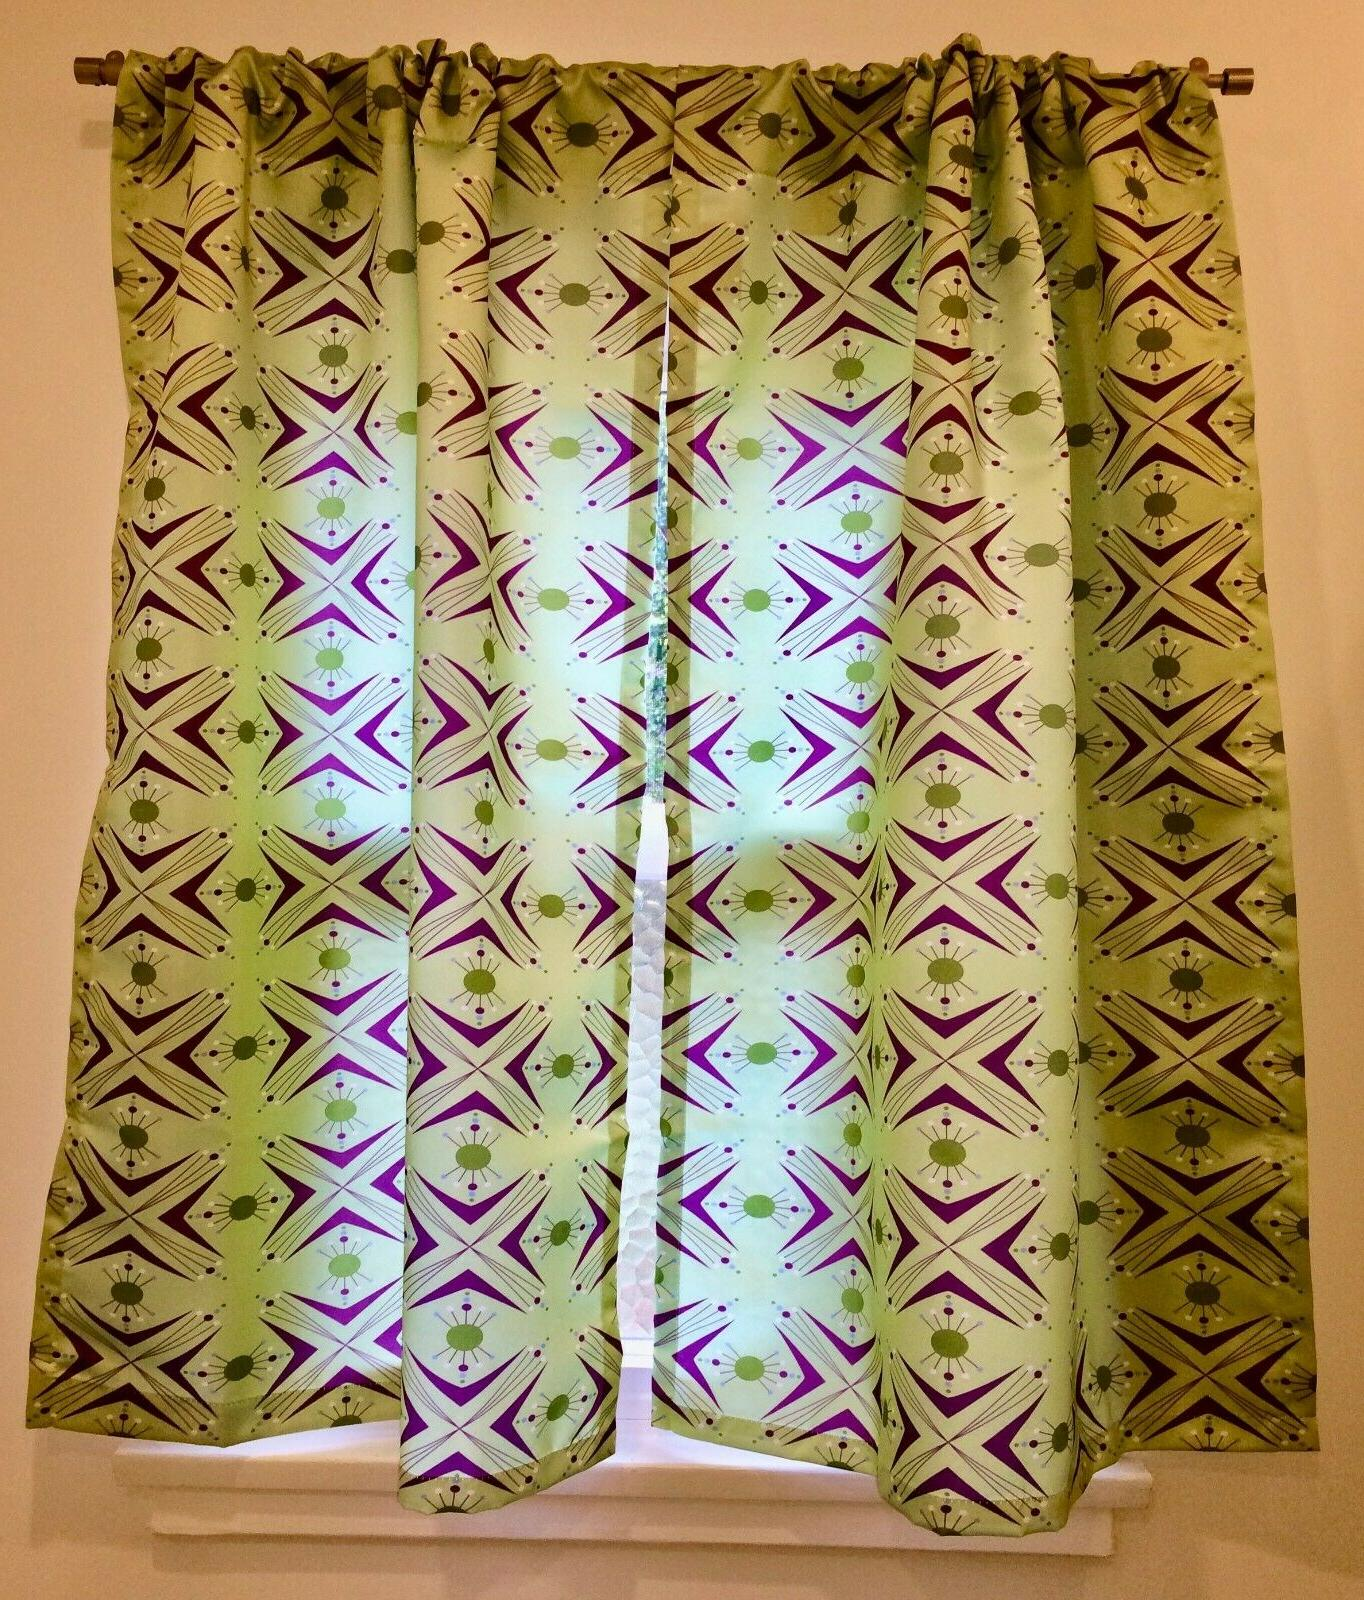 Mid-century modern curtains by